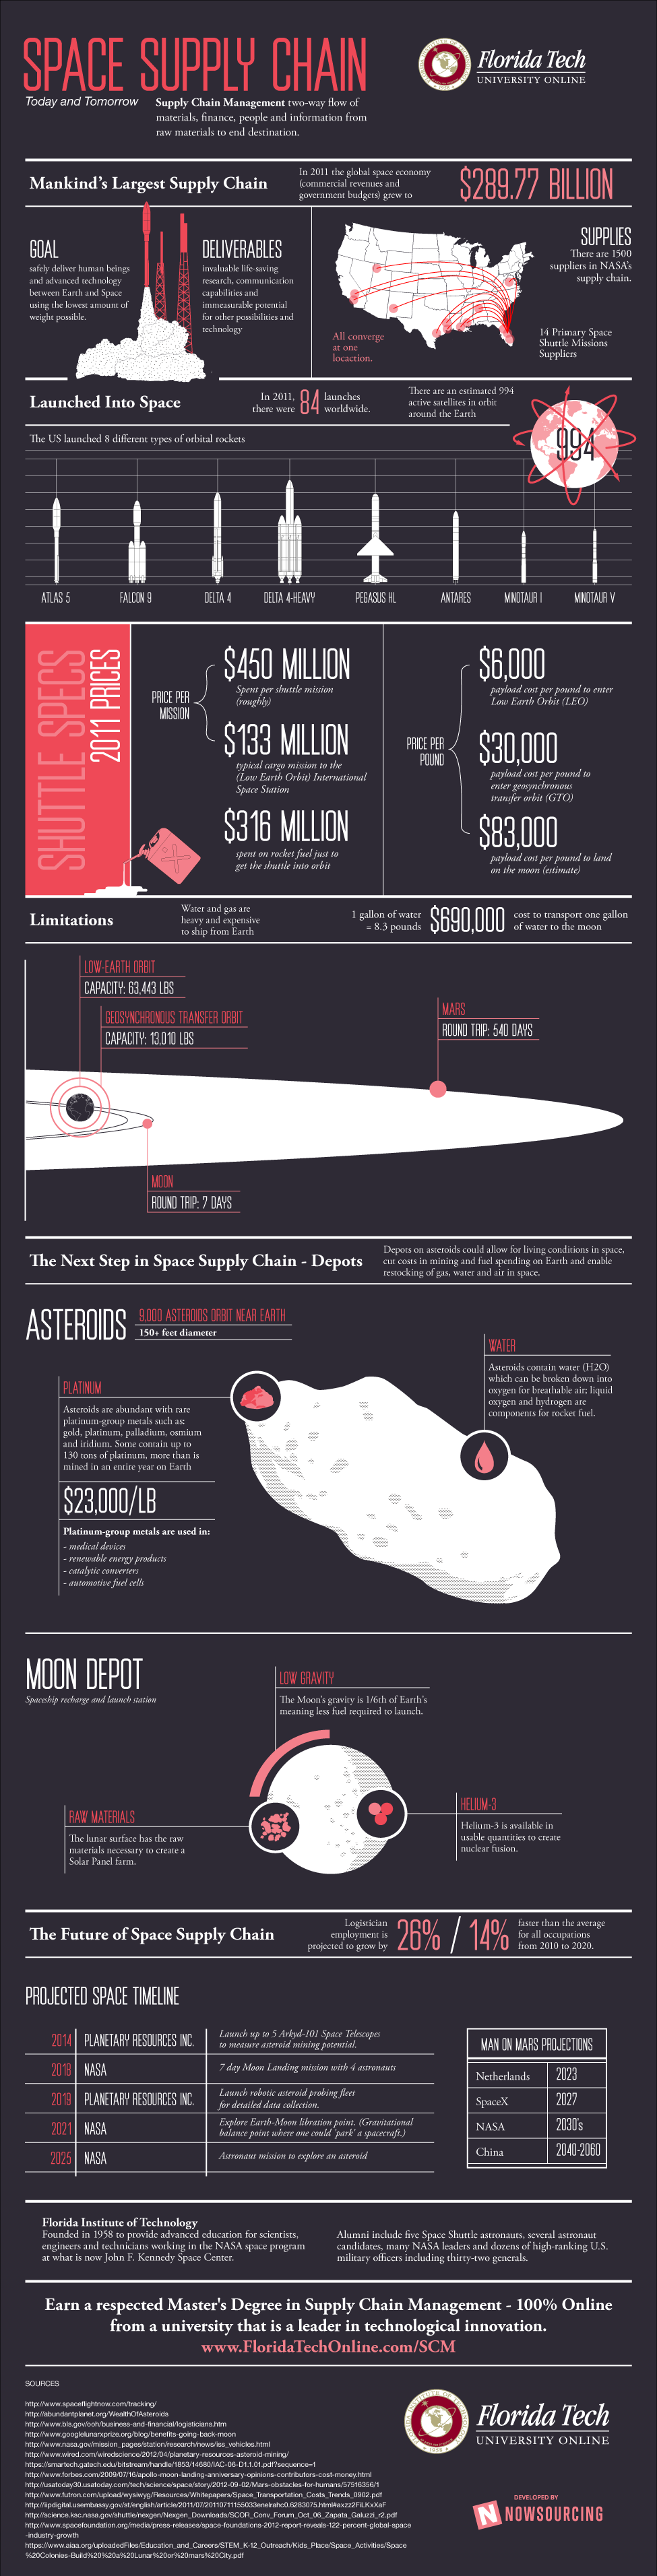 Space Supply Chain Logistics [INFOGRAPHIC] – Florida Tech Online